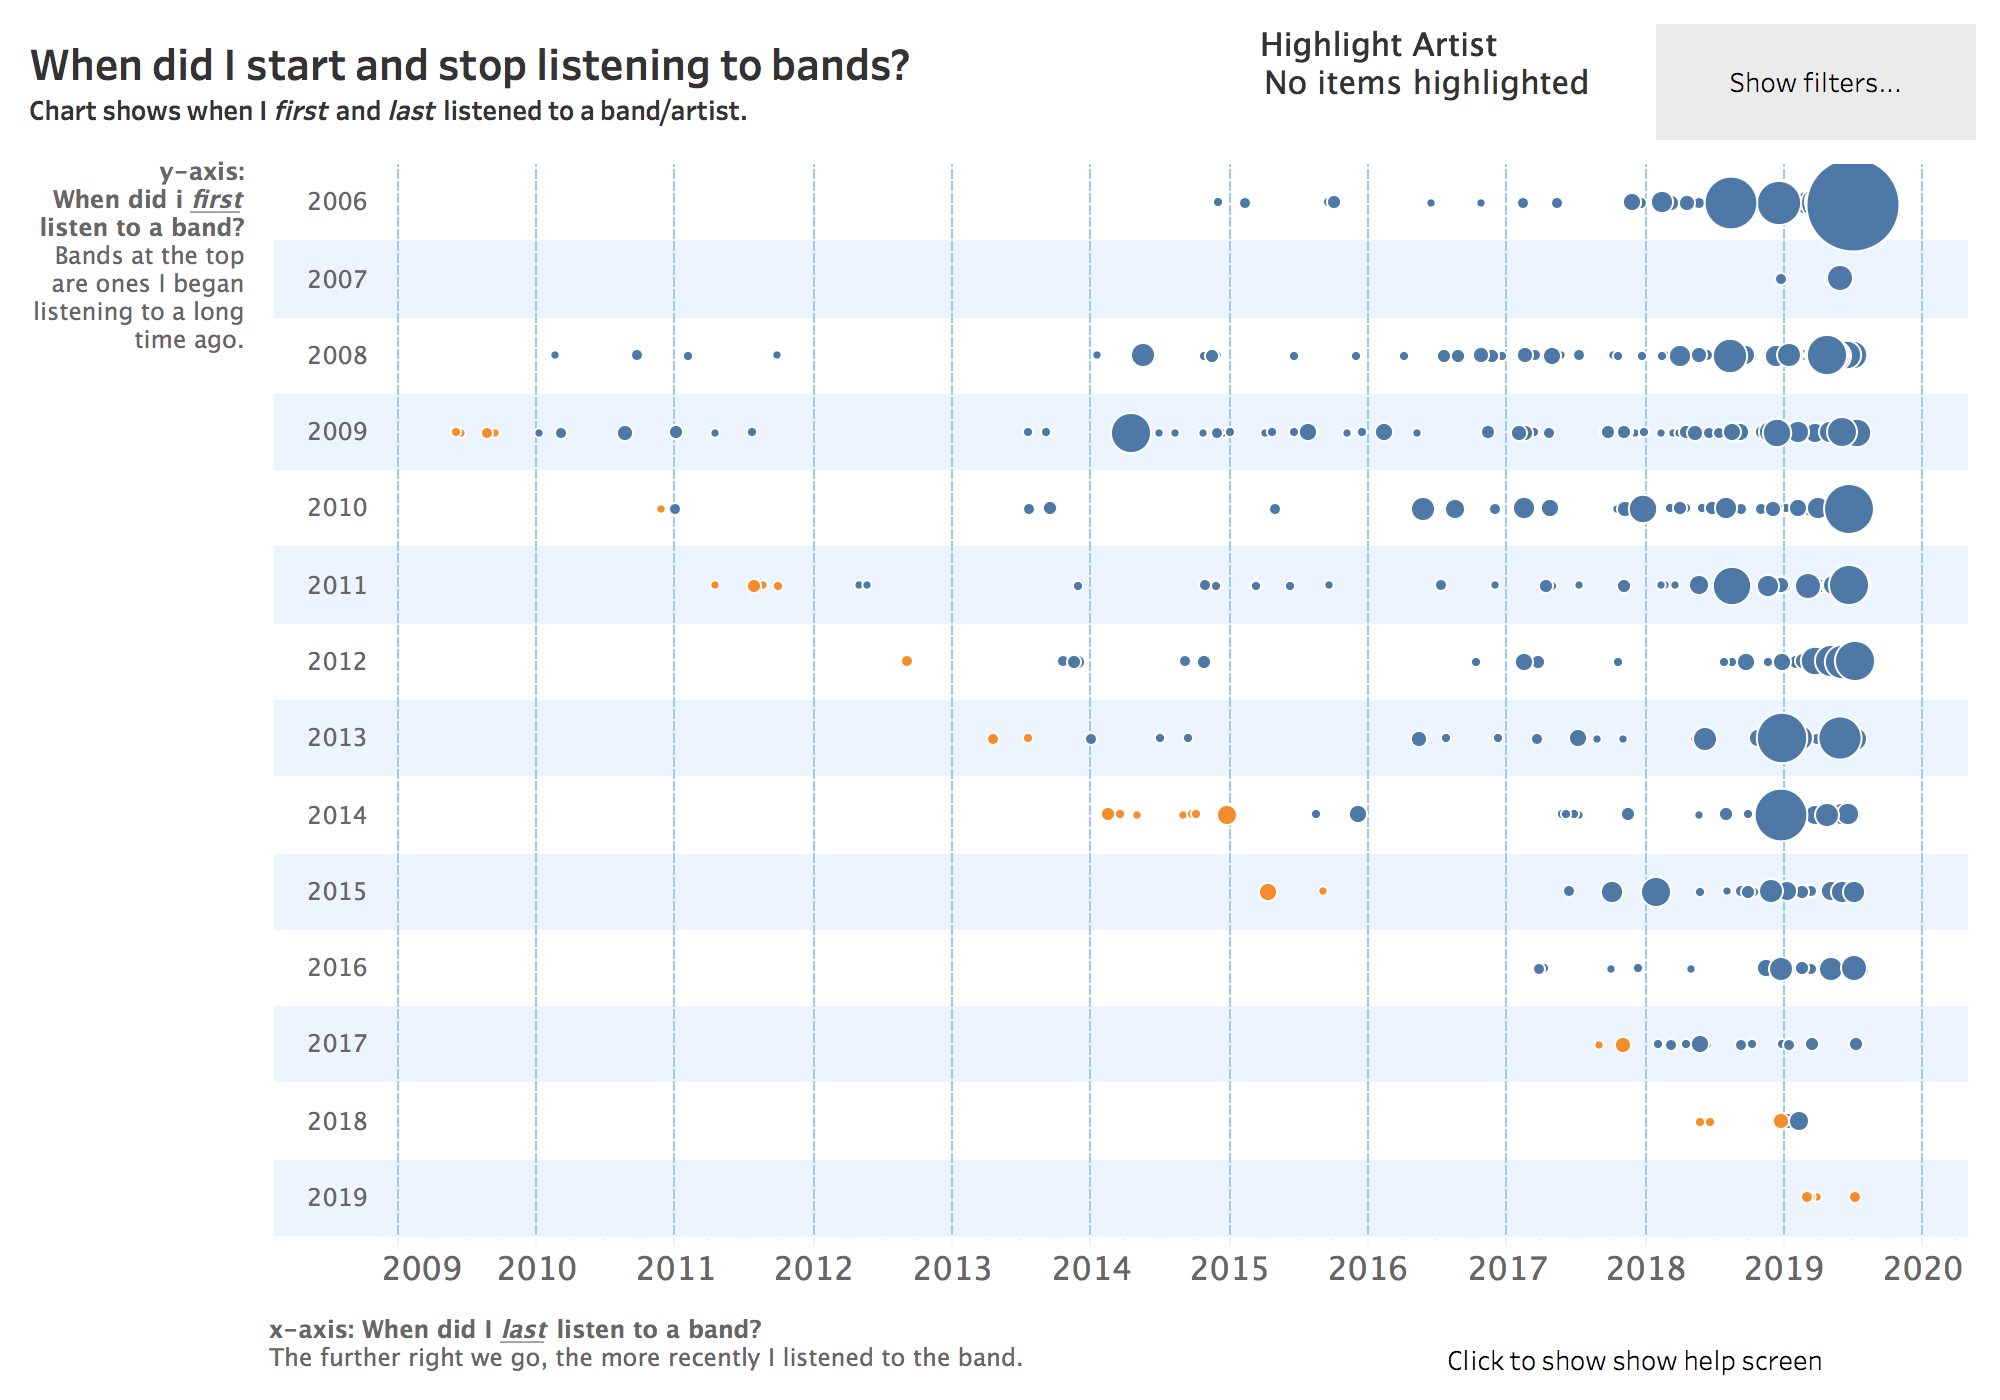 How Bohemian Rhapsody, Rocketman, and Yesterday affected andy cotgreave's last.fm scobbling data